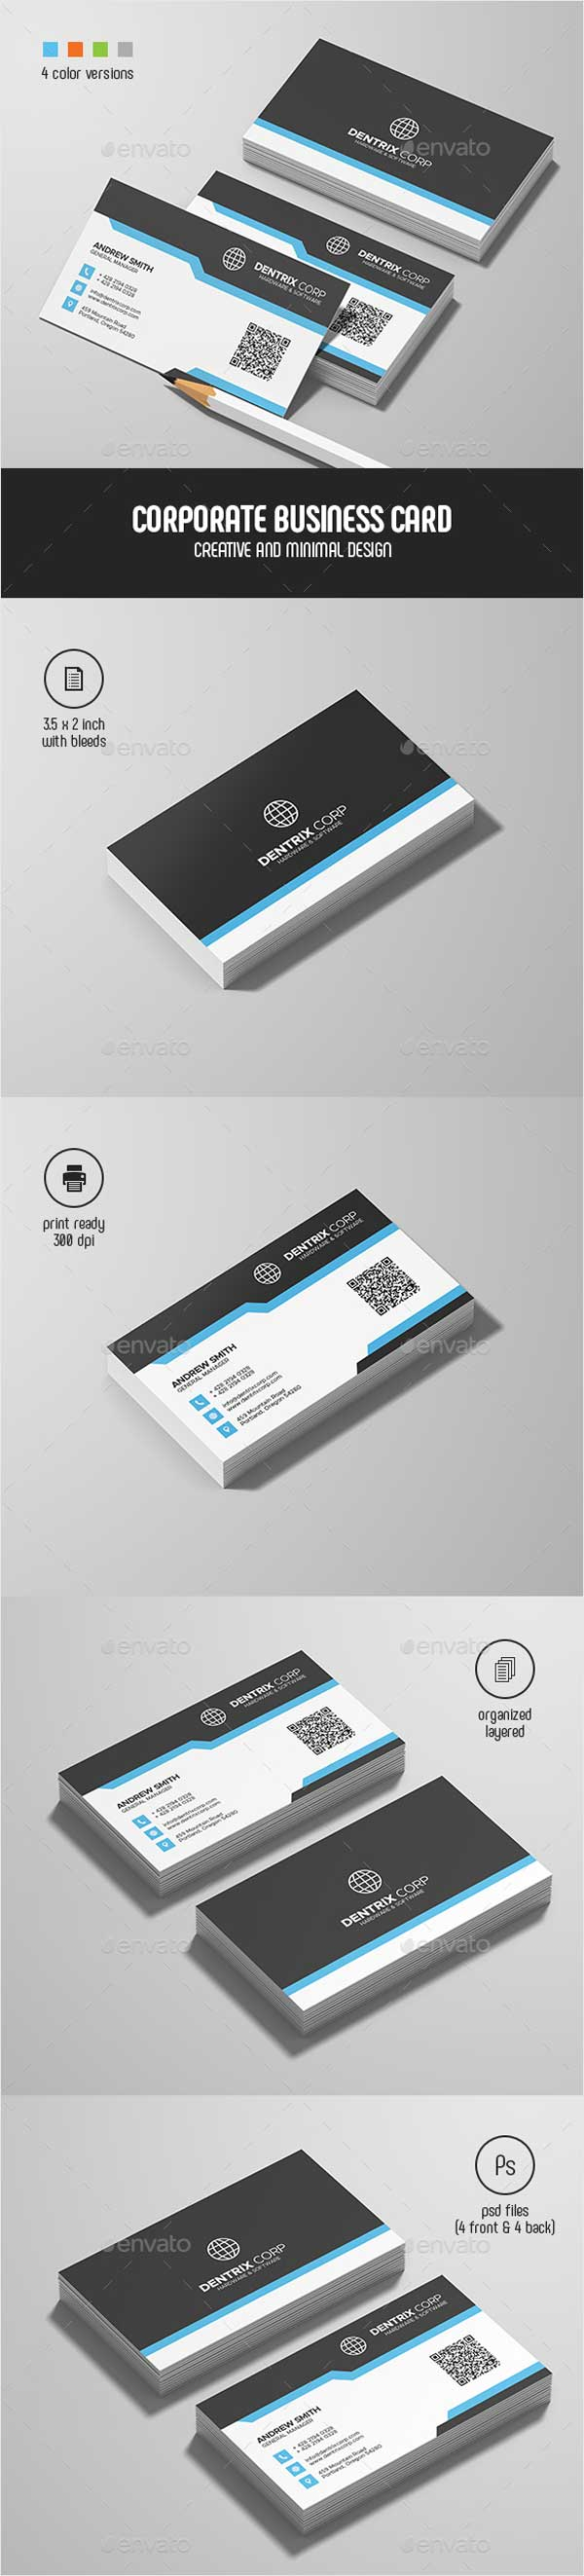 Corporate-Business-Card-1